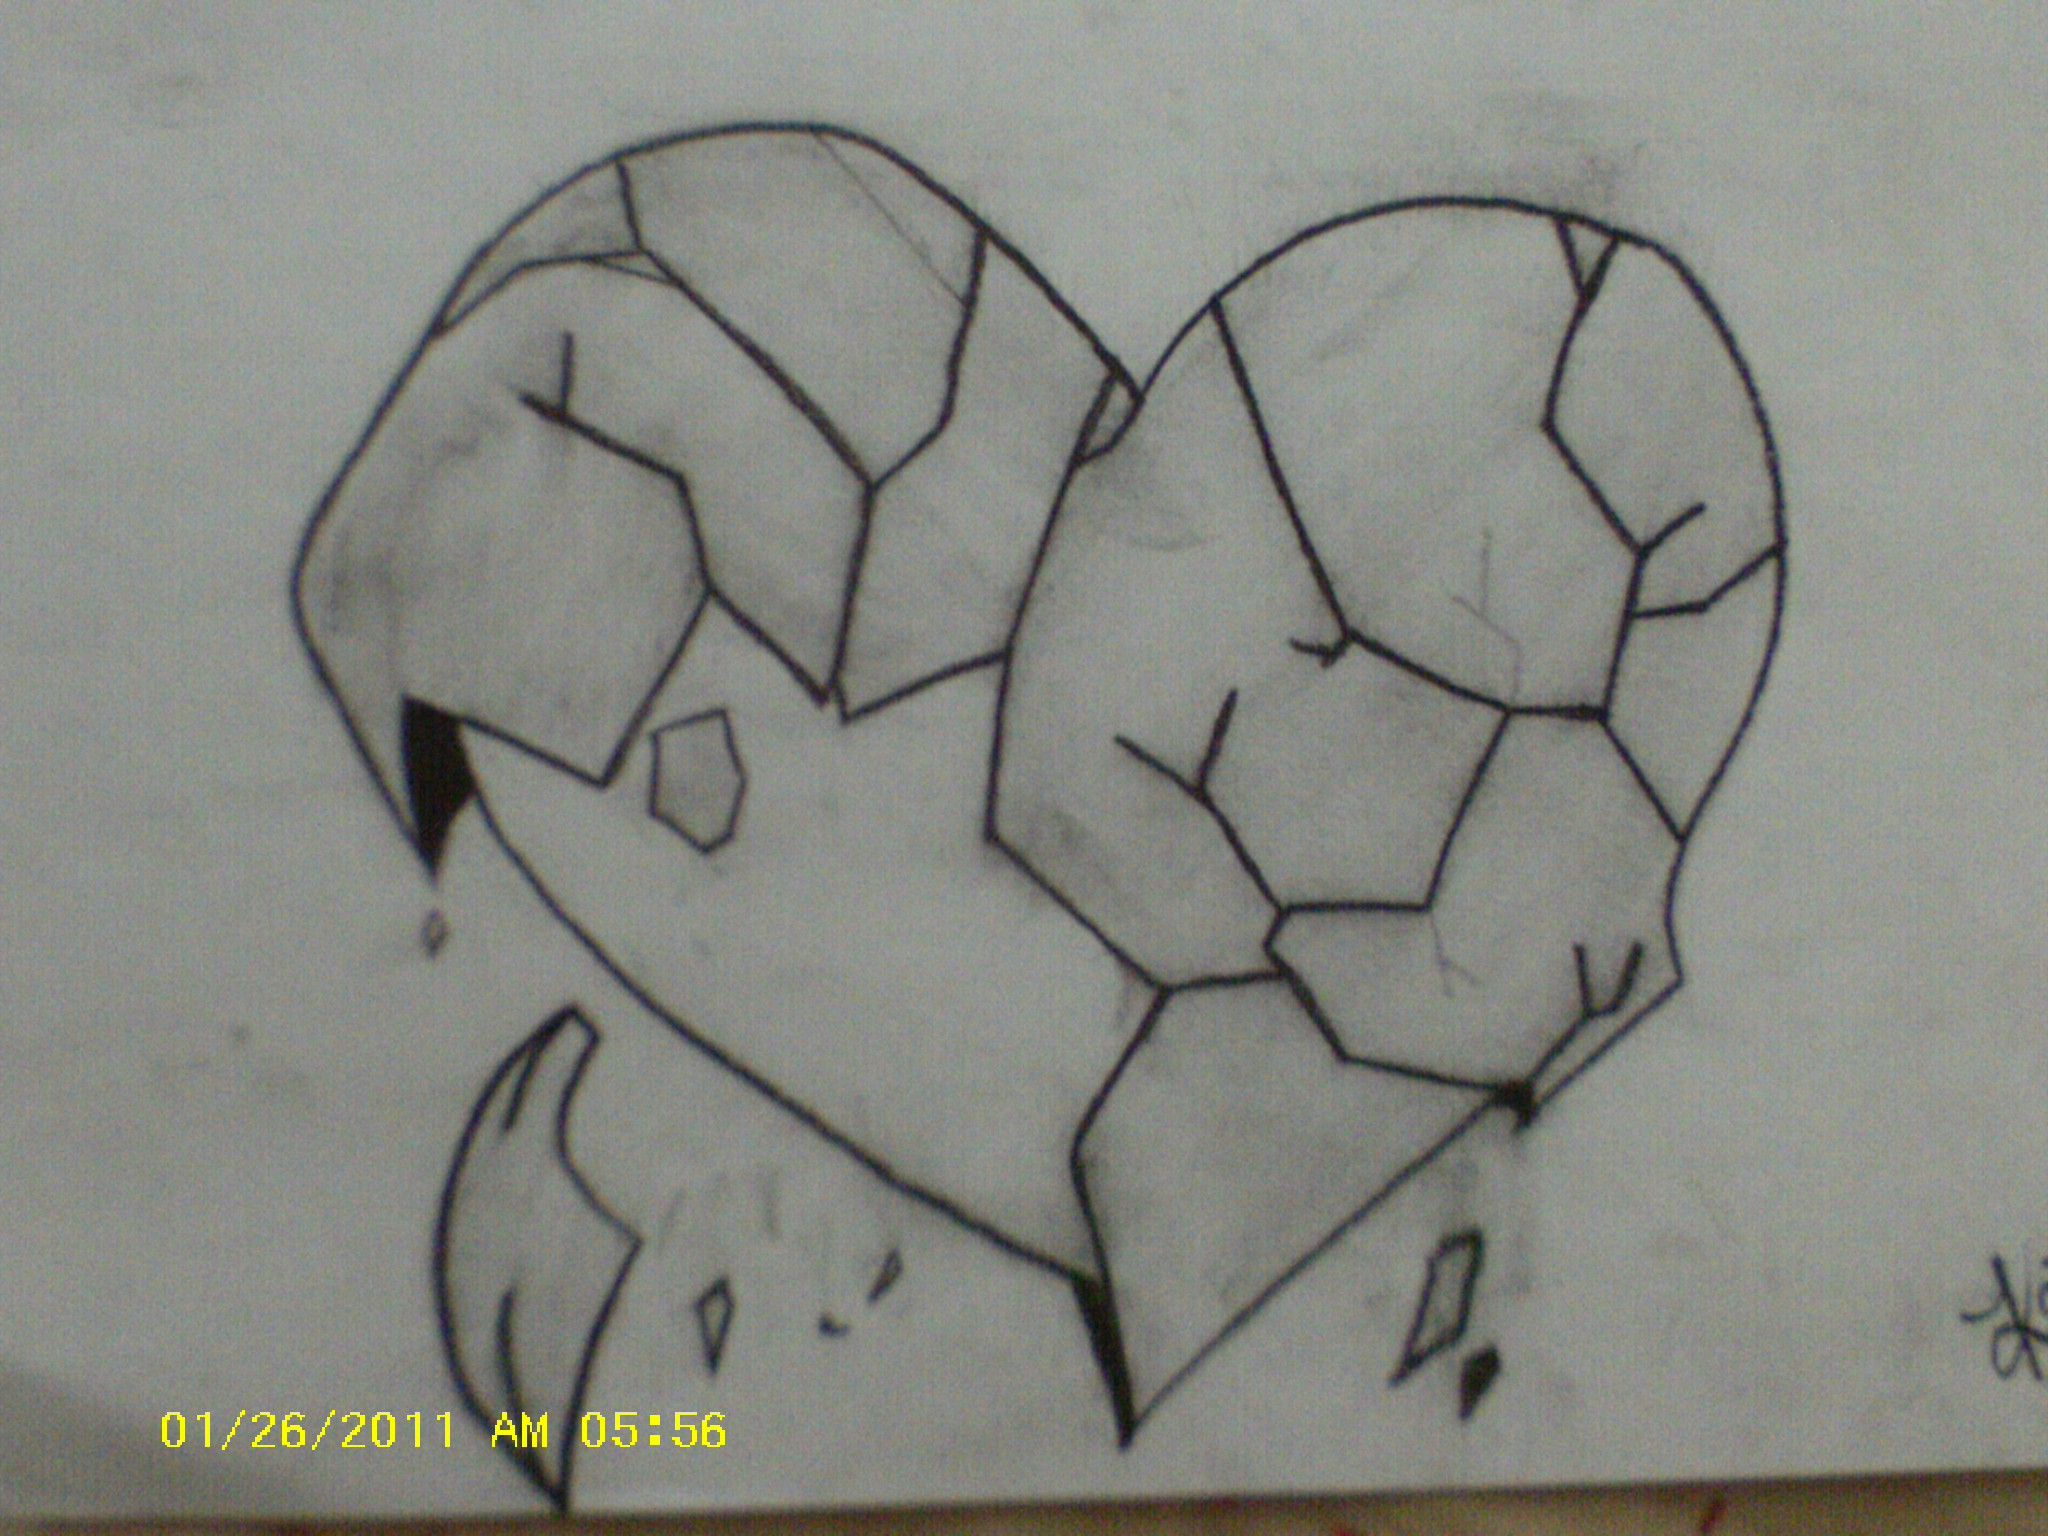 Easy pencil drawings of broken hearts 2015 sunson